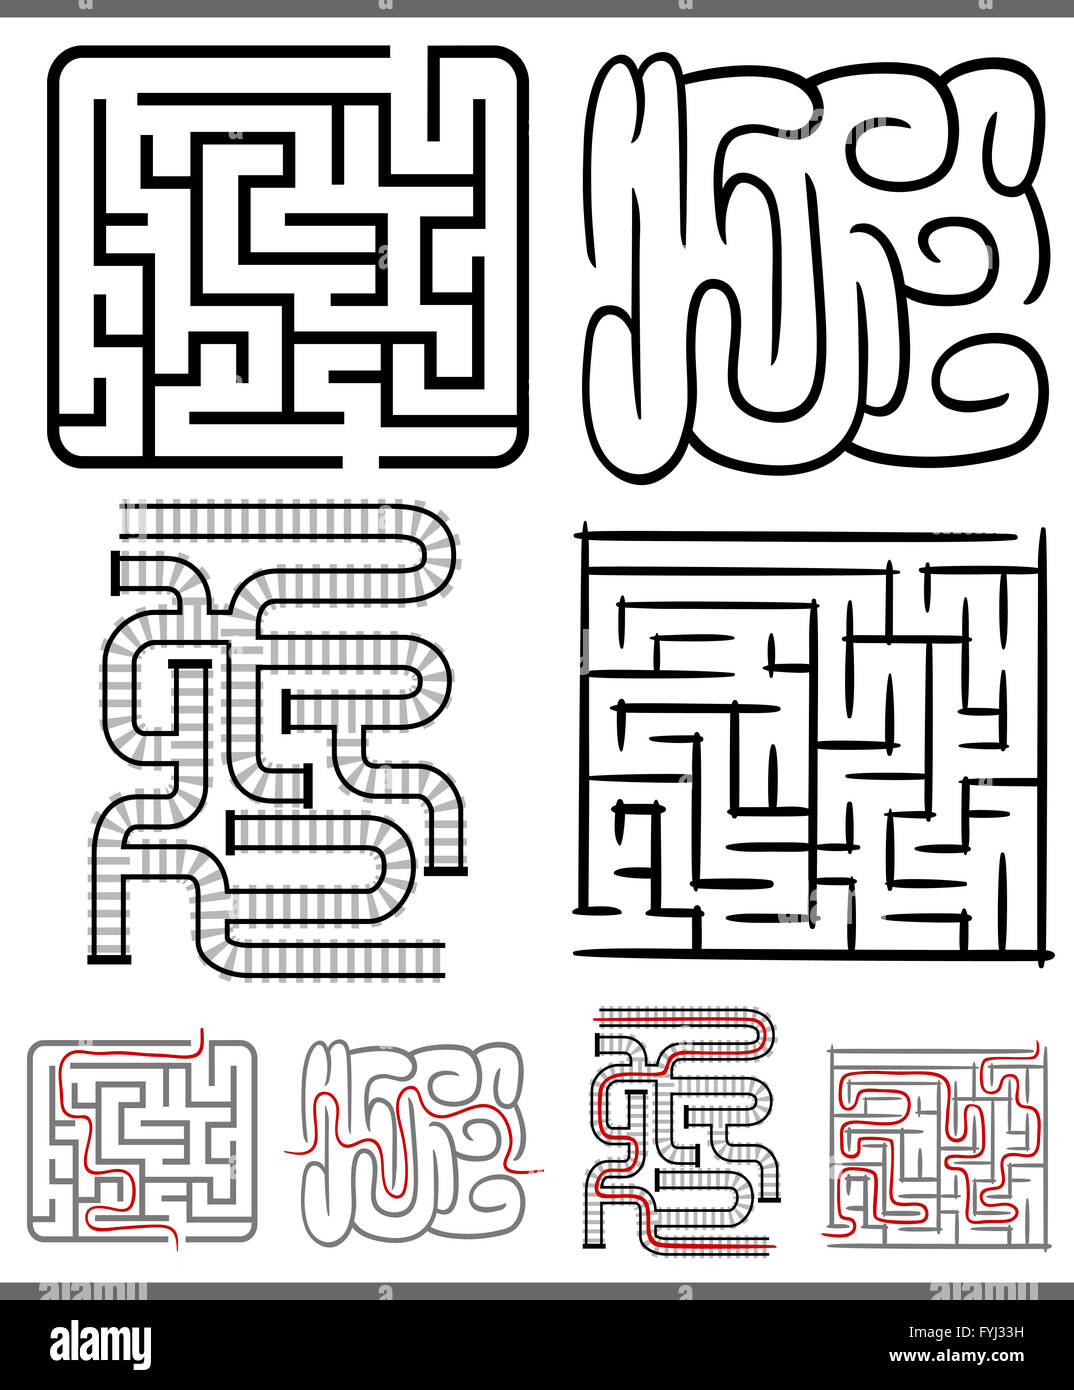 mazes or labyrinths diagrams set - Stock Image